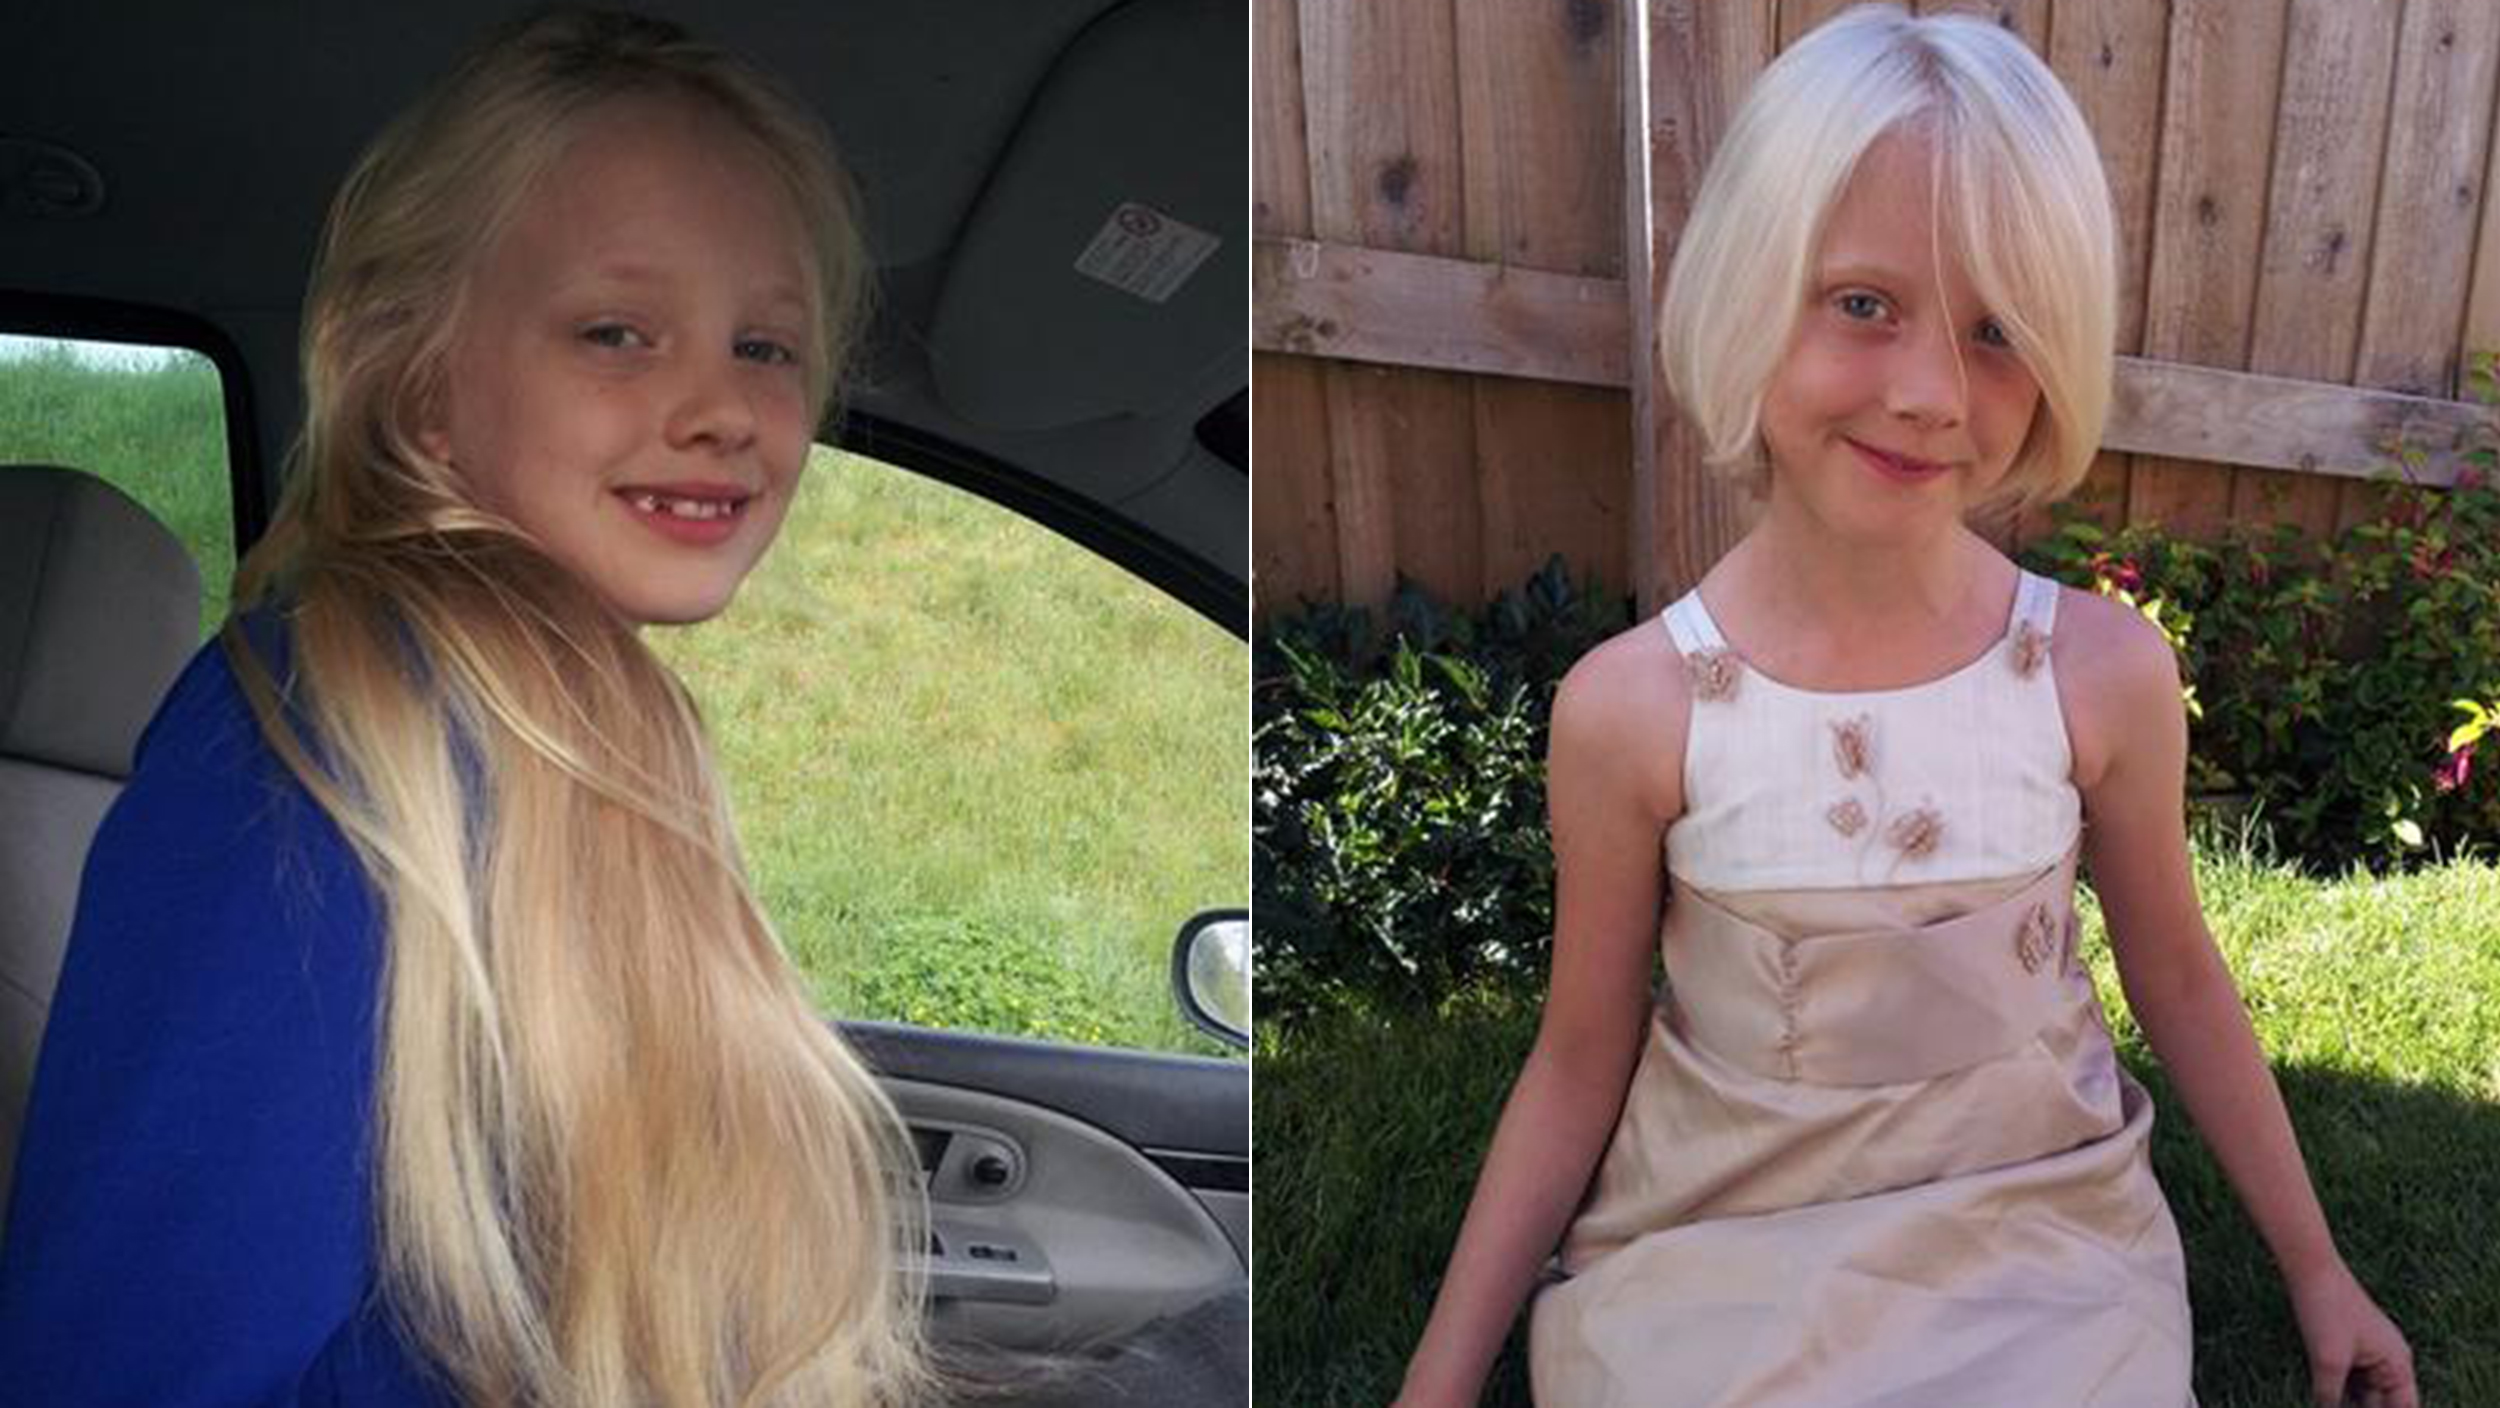 6-year-old 'Rapunzel' cuts her hair for kids with cancer